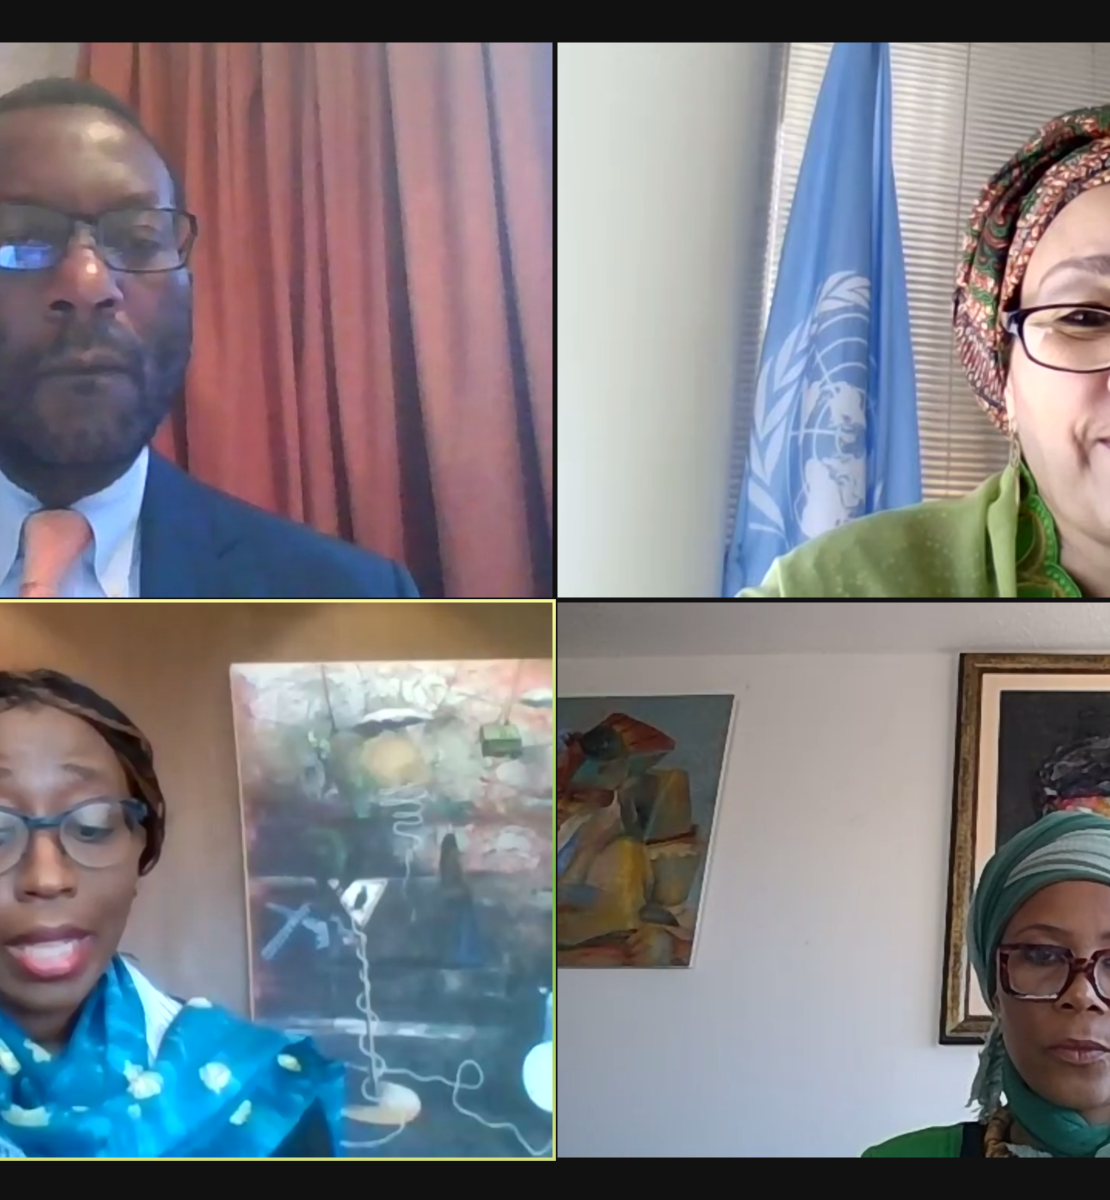 A screenshot of the virtual meeting with the DSG herself on the top right with meeting participants to the left and below her.